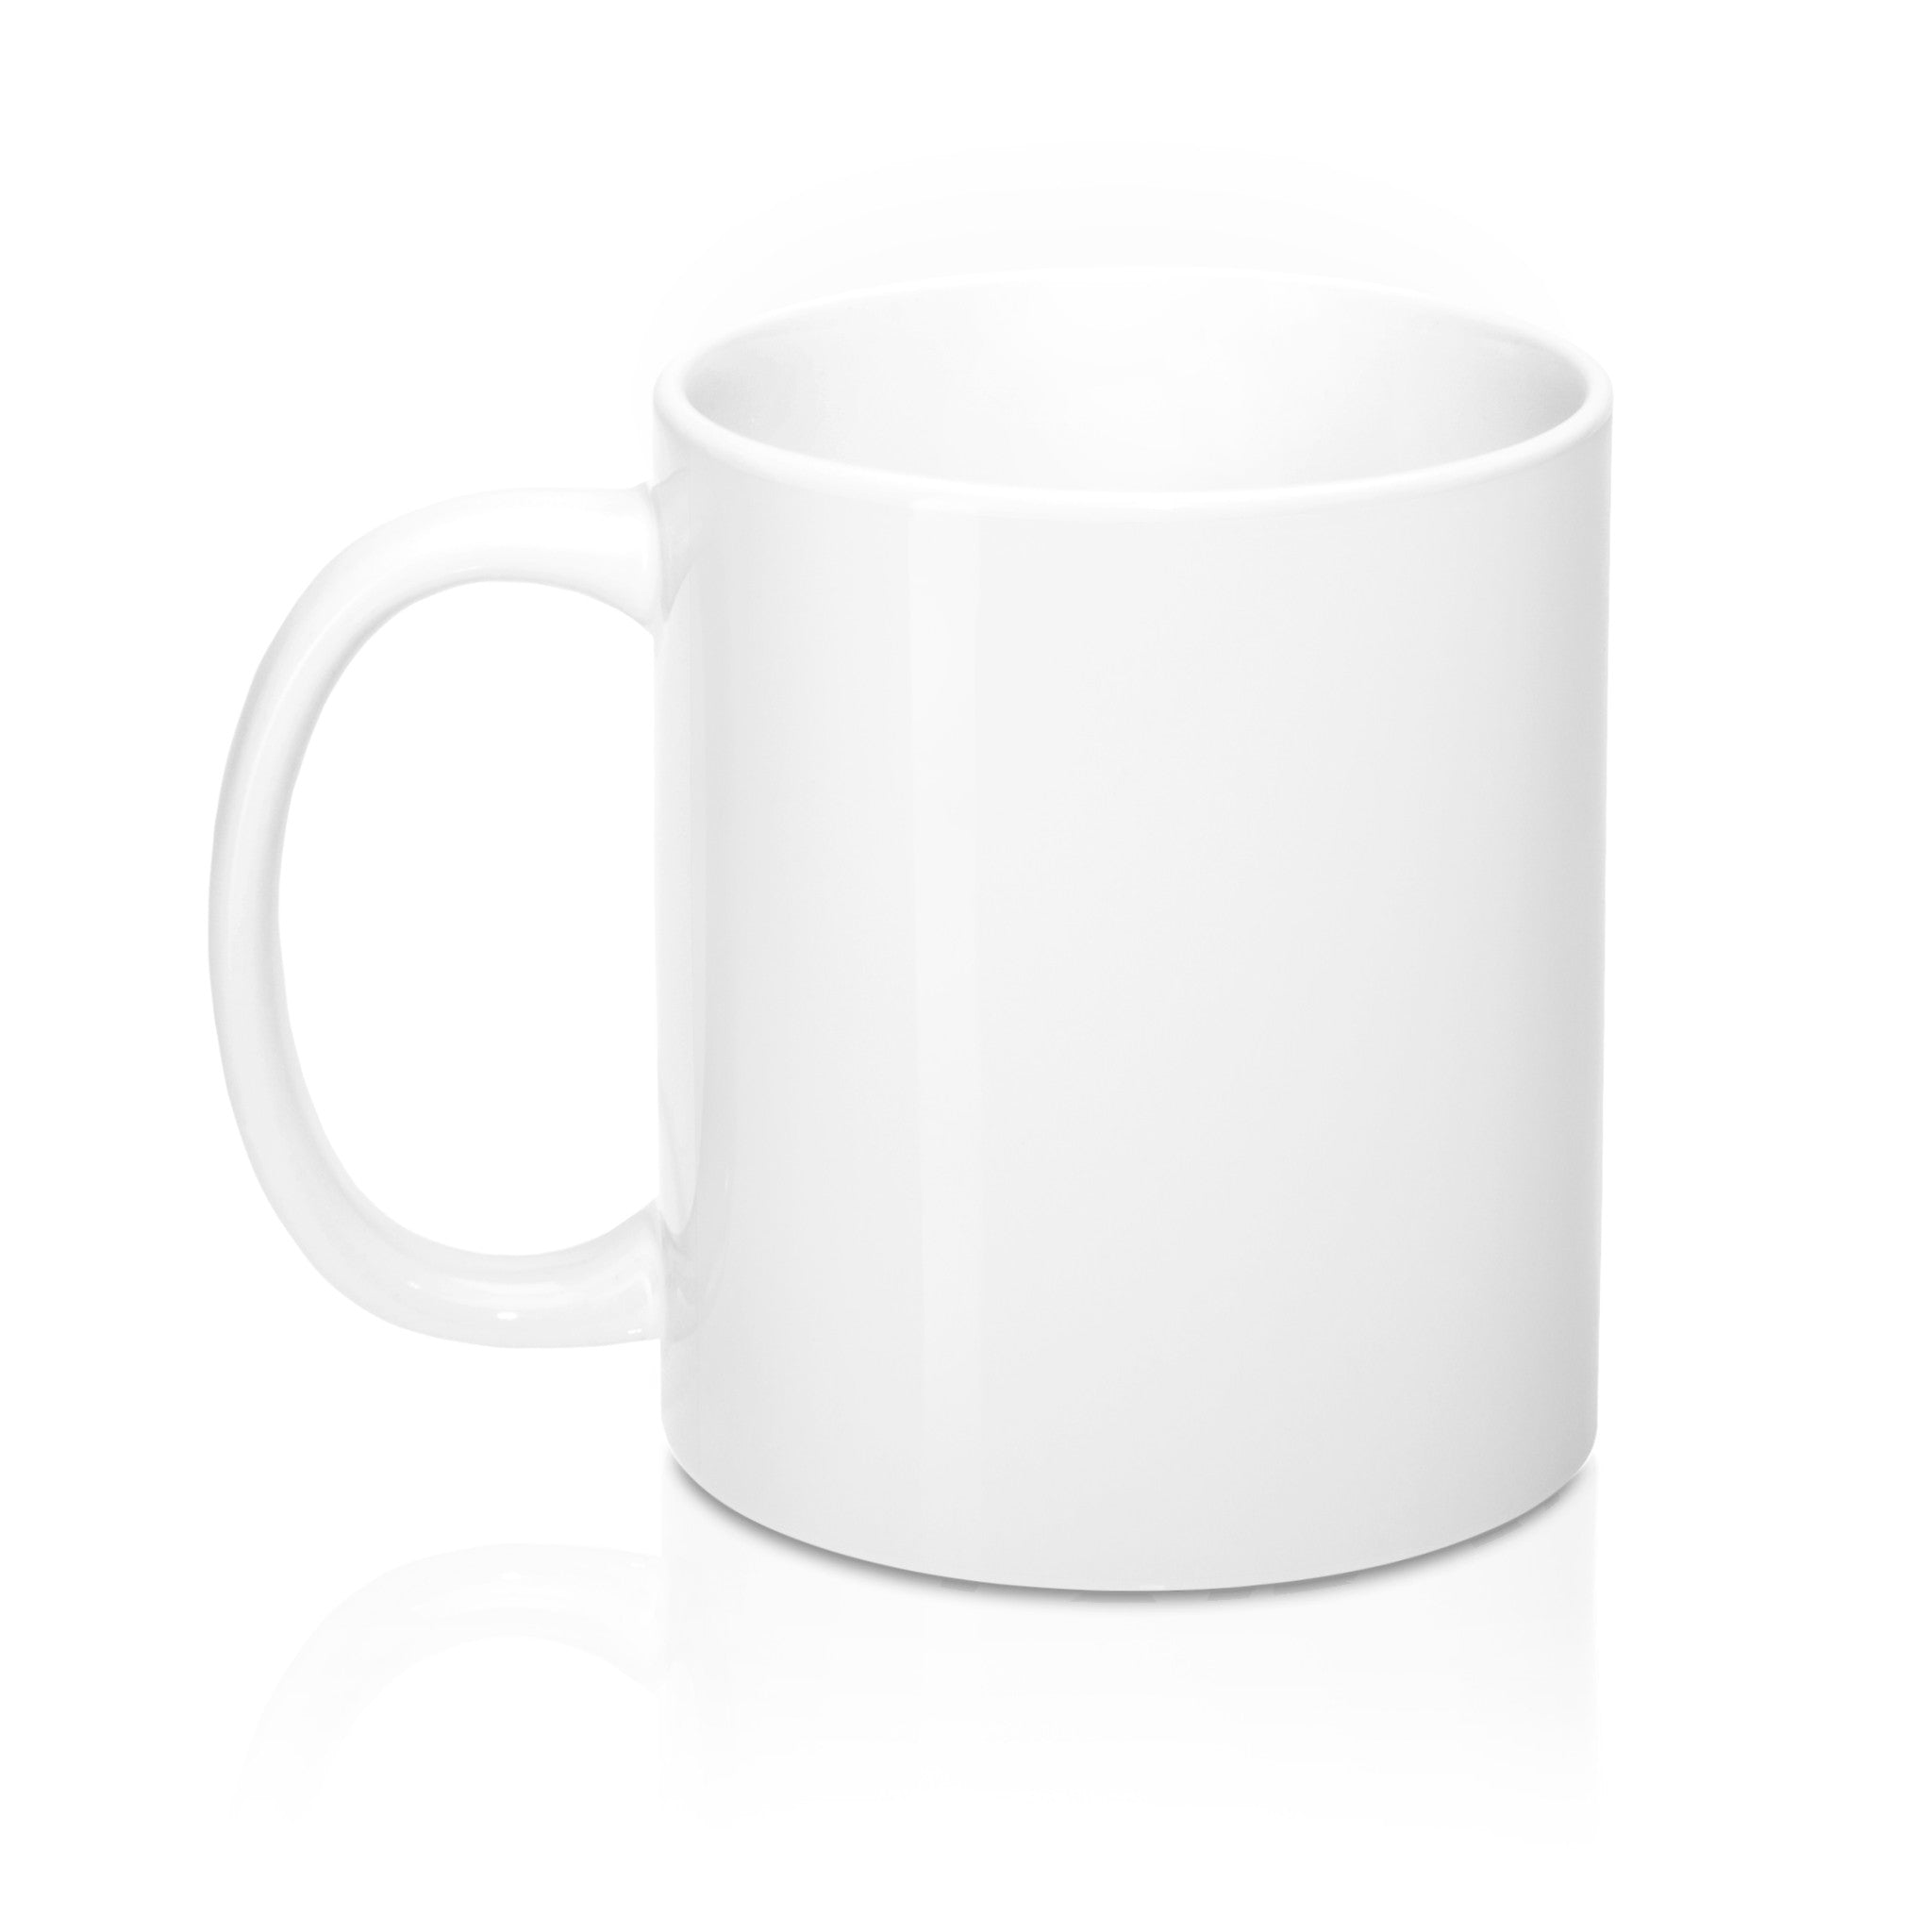 FREE Coffee Mug 11oz.